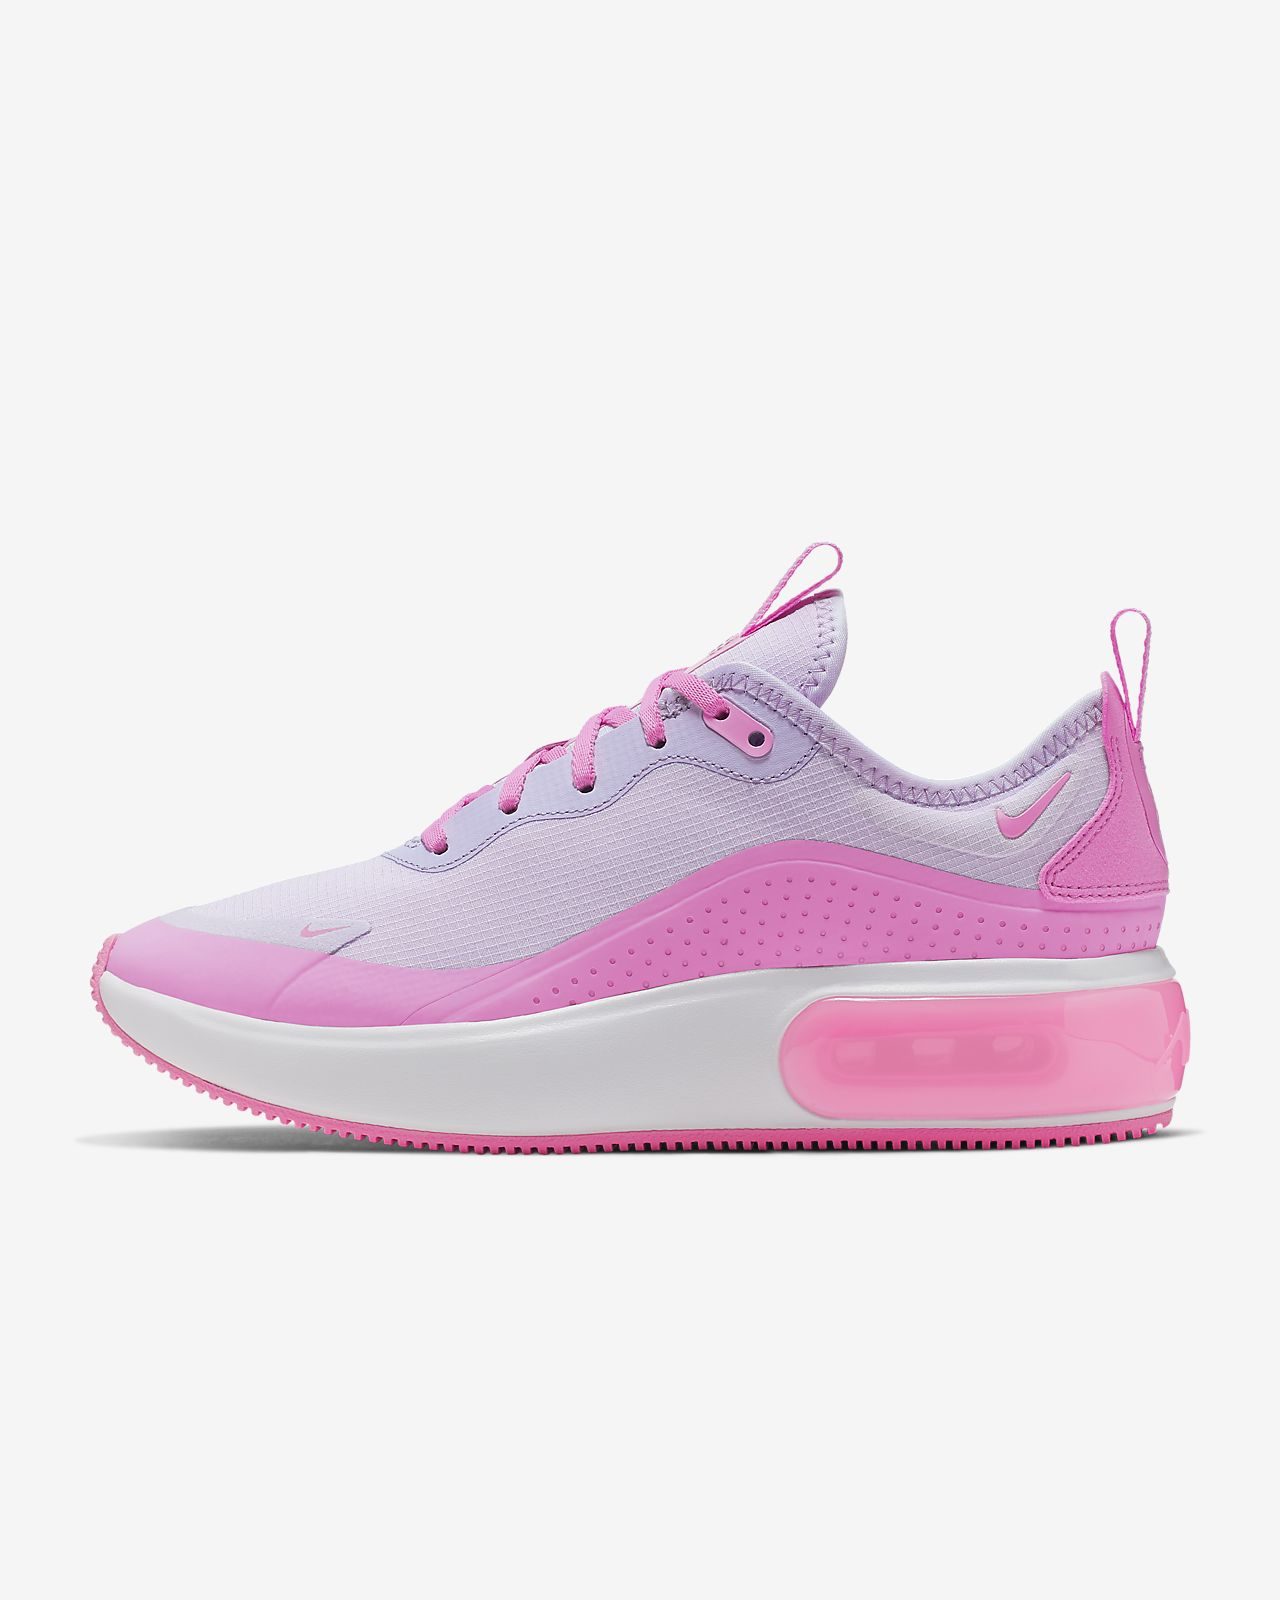 Nike Air Max Dia Women's Shoe